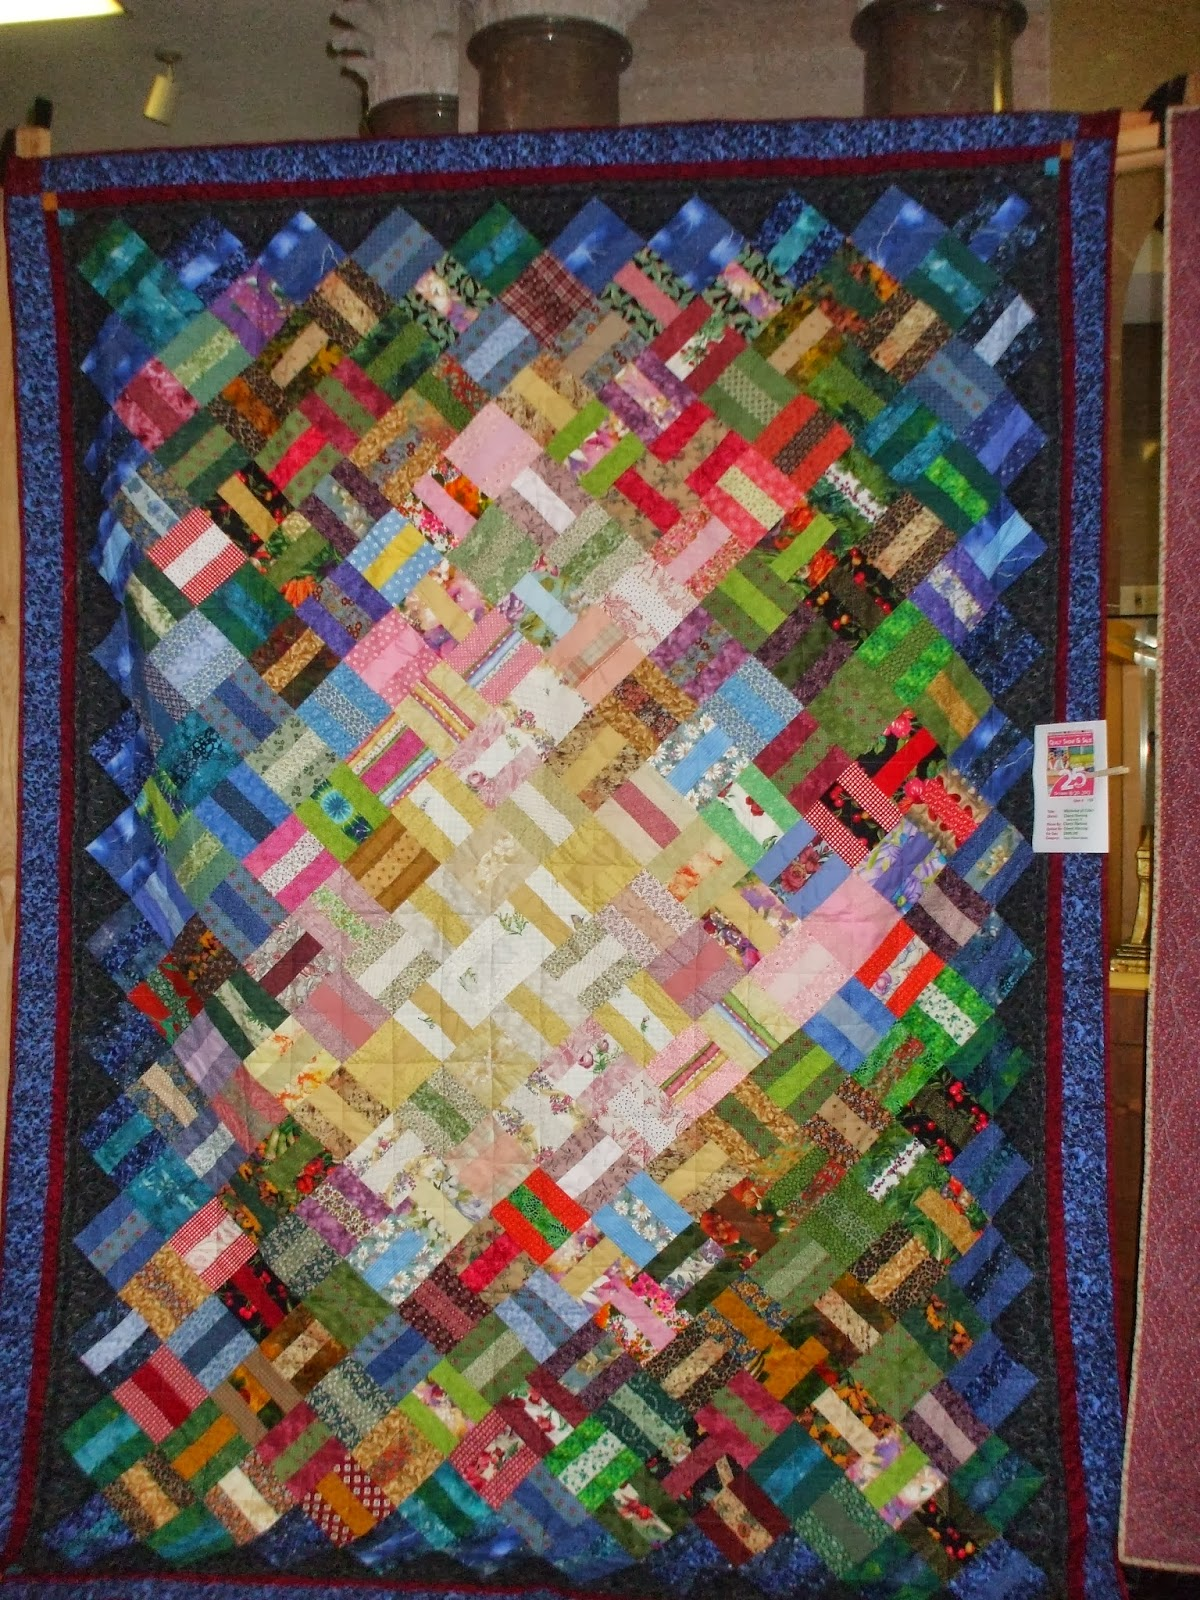 Quilts and art by cheryl stephen foster quilt show 25 years for Quilt and craft show